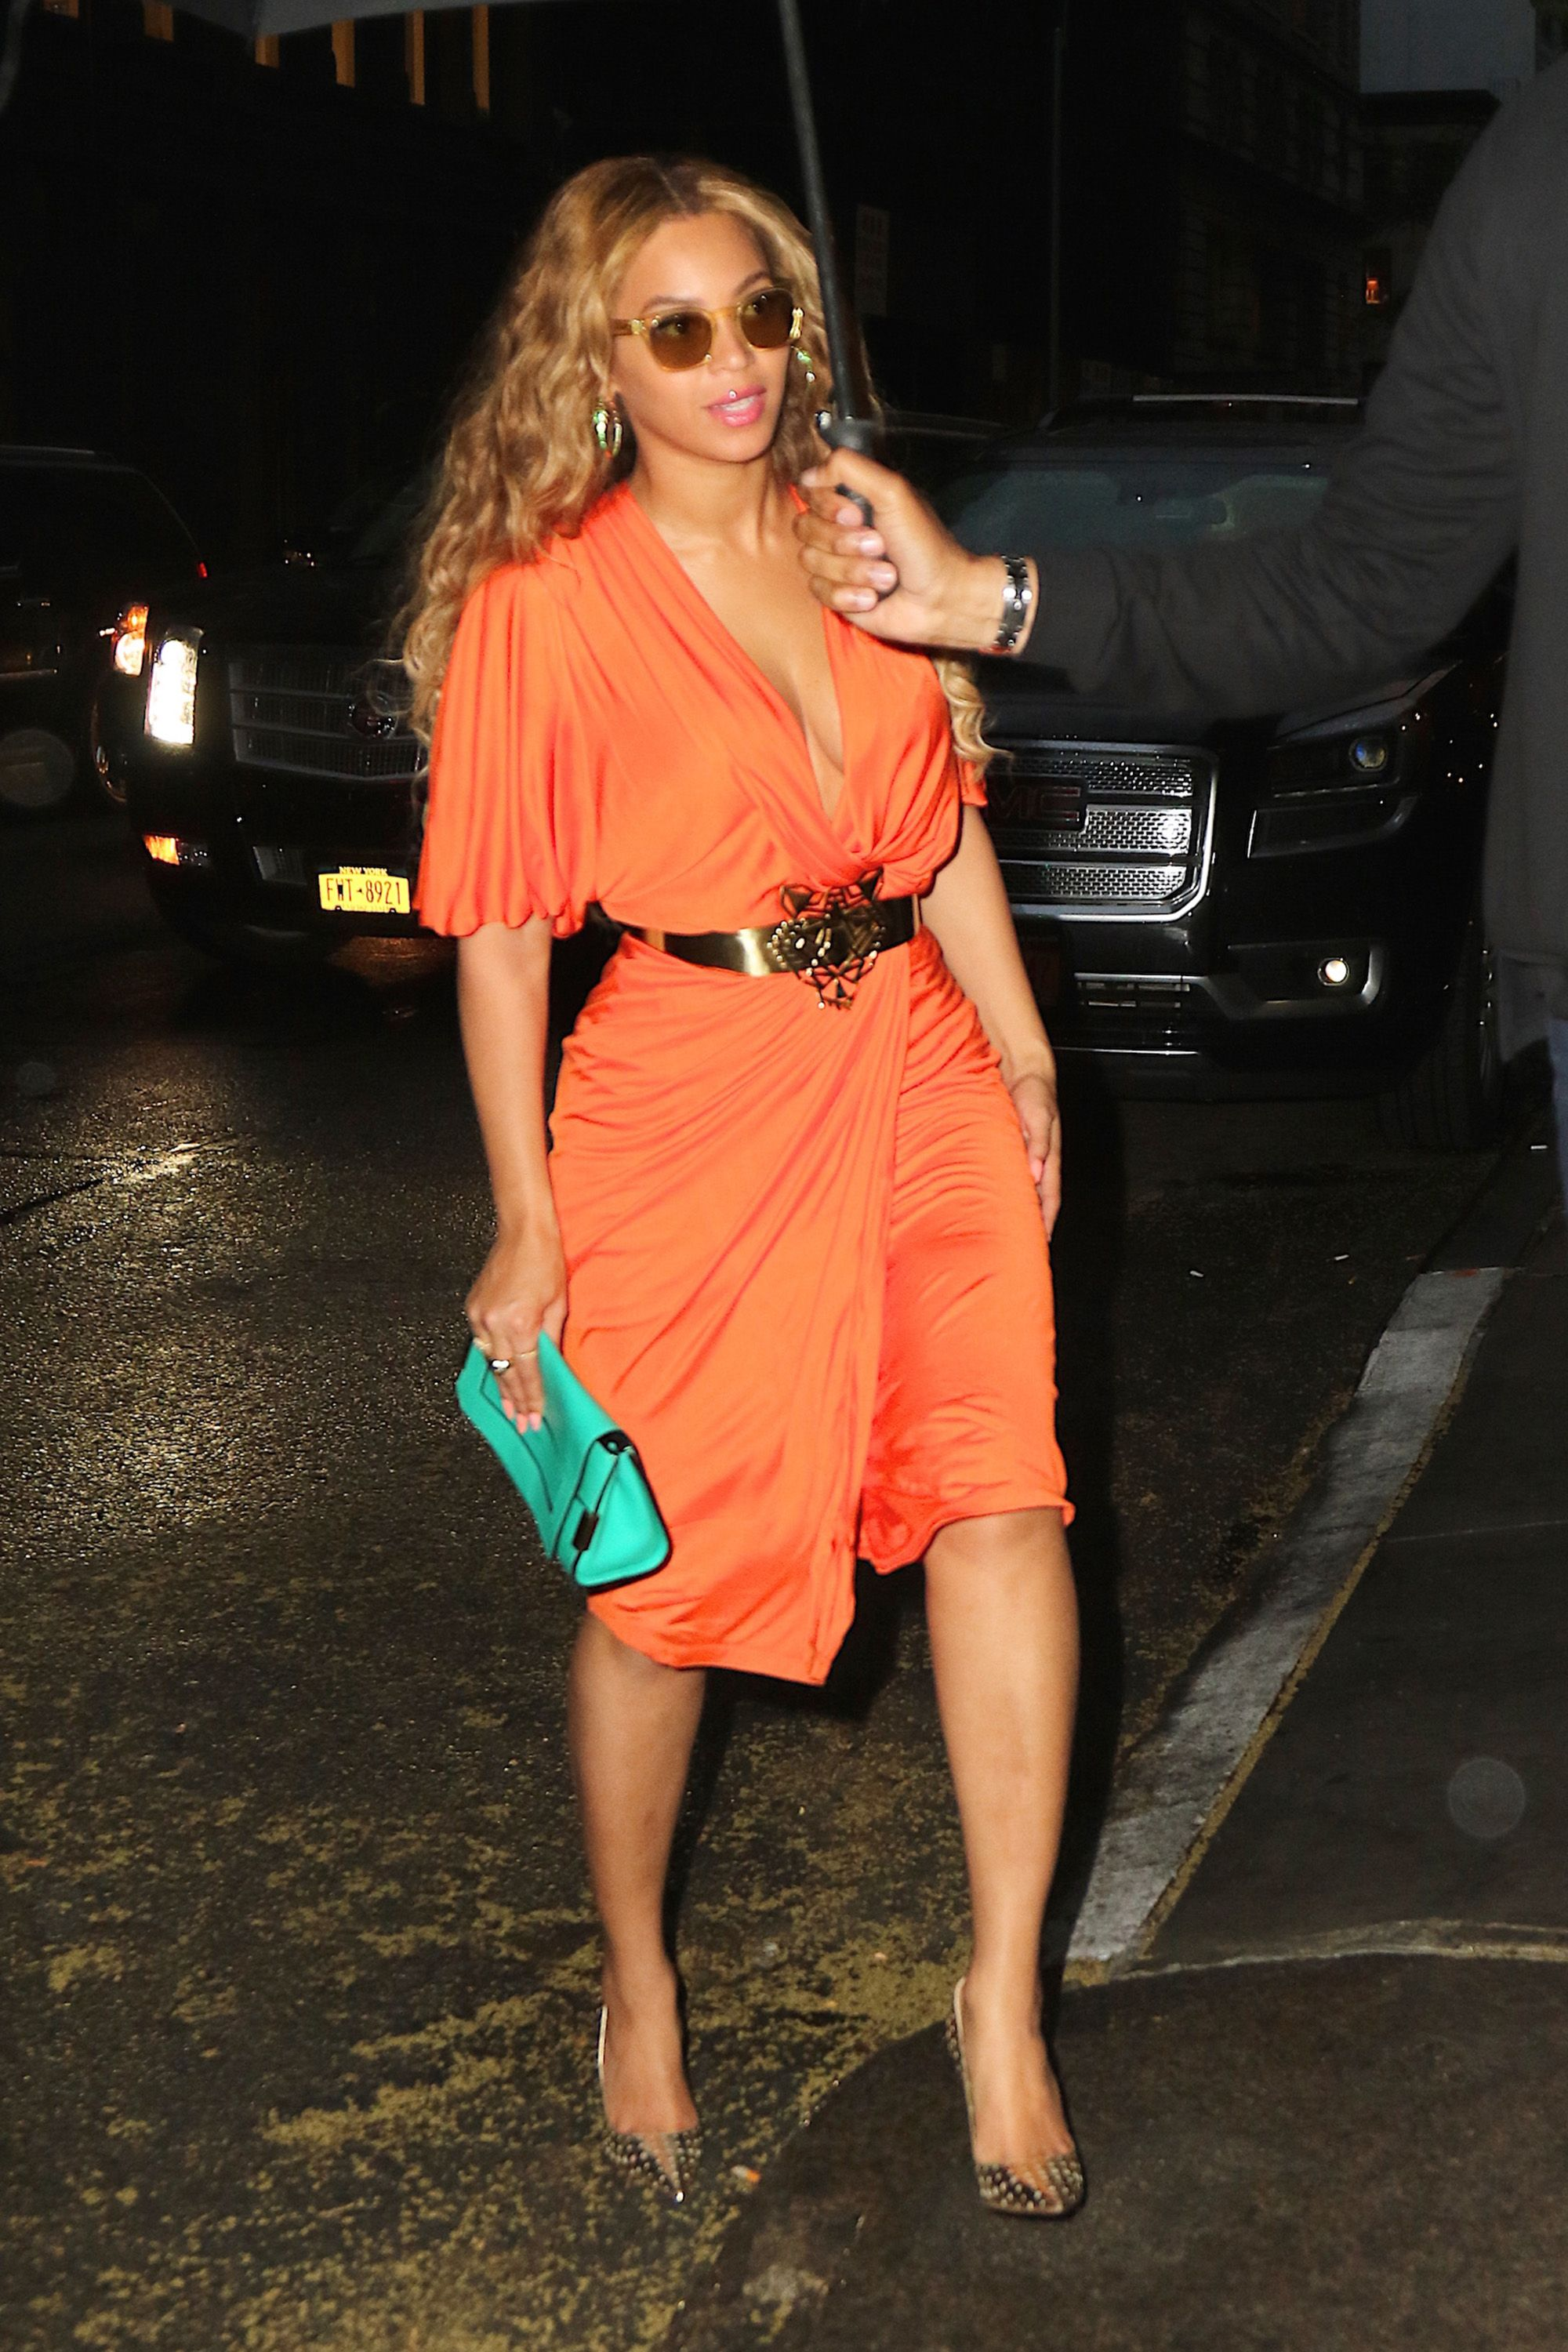 27 May 2015, New York City, New York State, USA --- EXCLUSIVE: Beyonce and Jay-Z leave their NYC office together following their recent vacation to Florence, Italy. Beyonce wore a bright orange dress cinched with a gold belt in the shape of a tiger's head with gold heels to match, and accessorized with a teal clutch and gold shades. The power couple were both in high spirits as they left smiling before heading to dinner in the West Village. Pictured: Beyonce --- Image by © We Dem Boyz/Splash News/Corbis